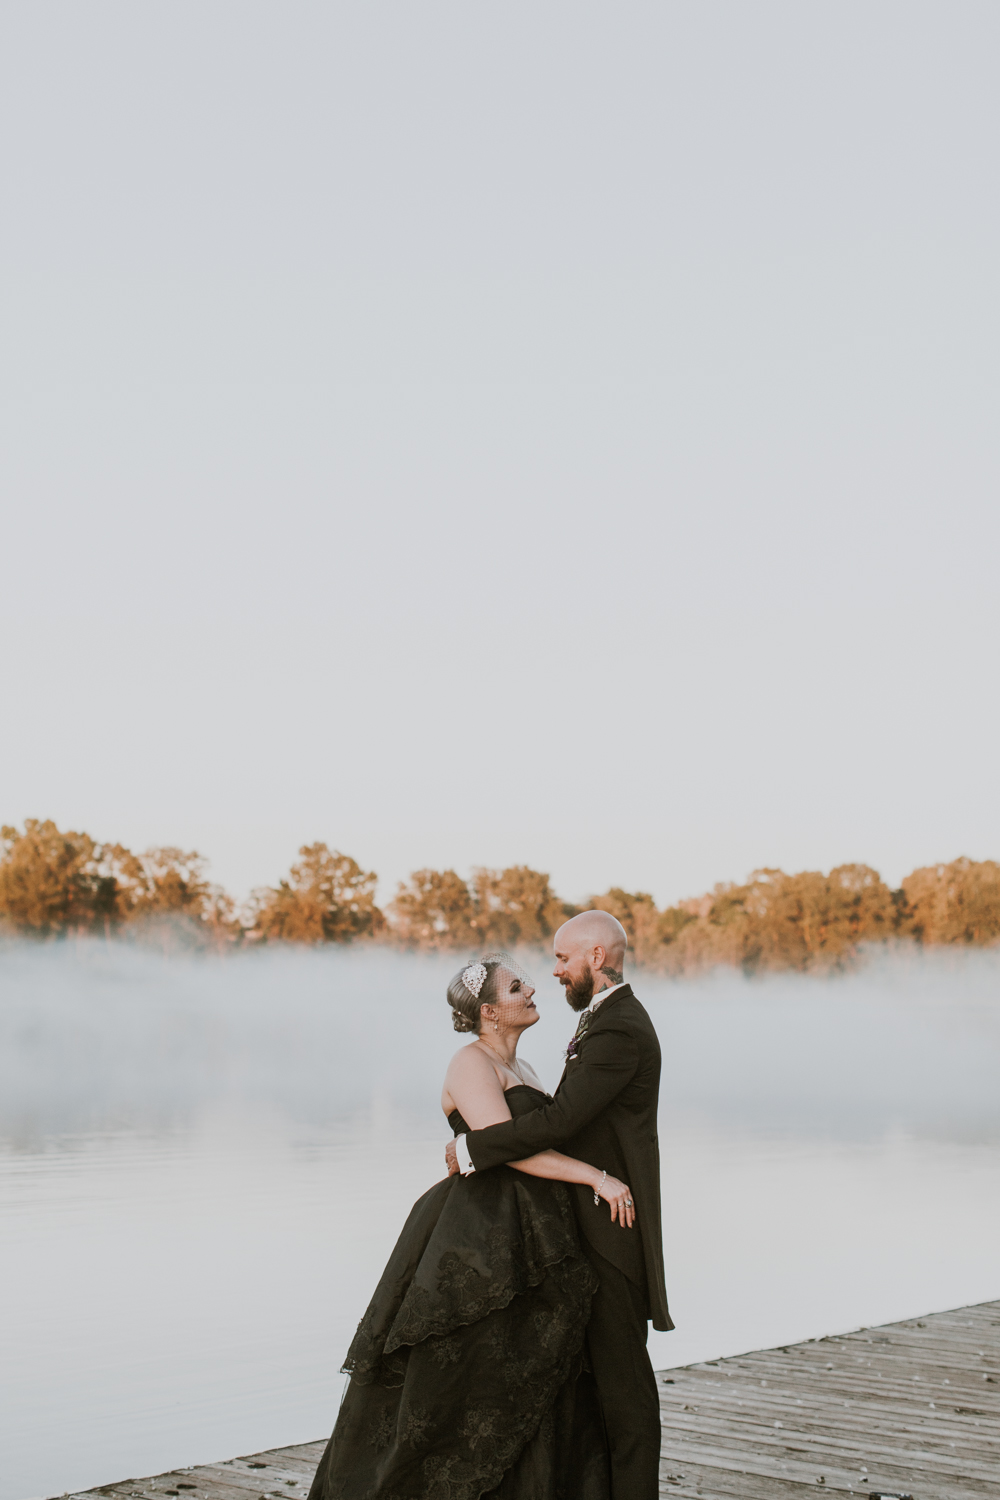 jessetia_wedding_preview-9.jpg